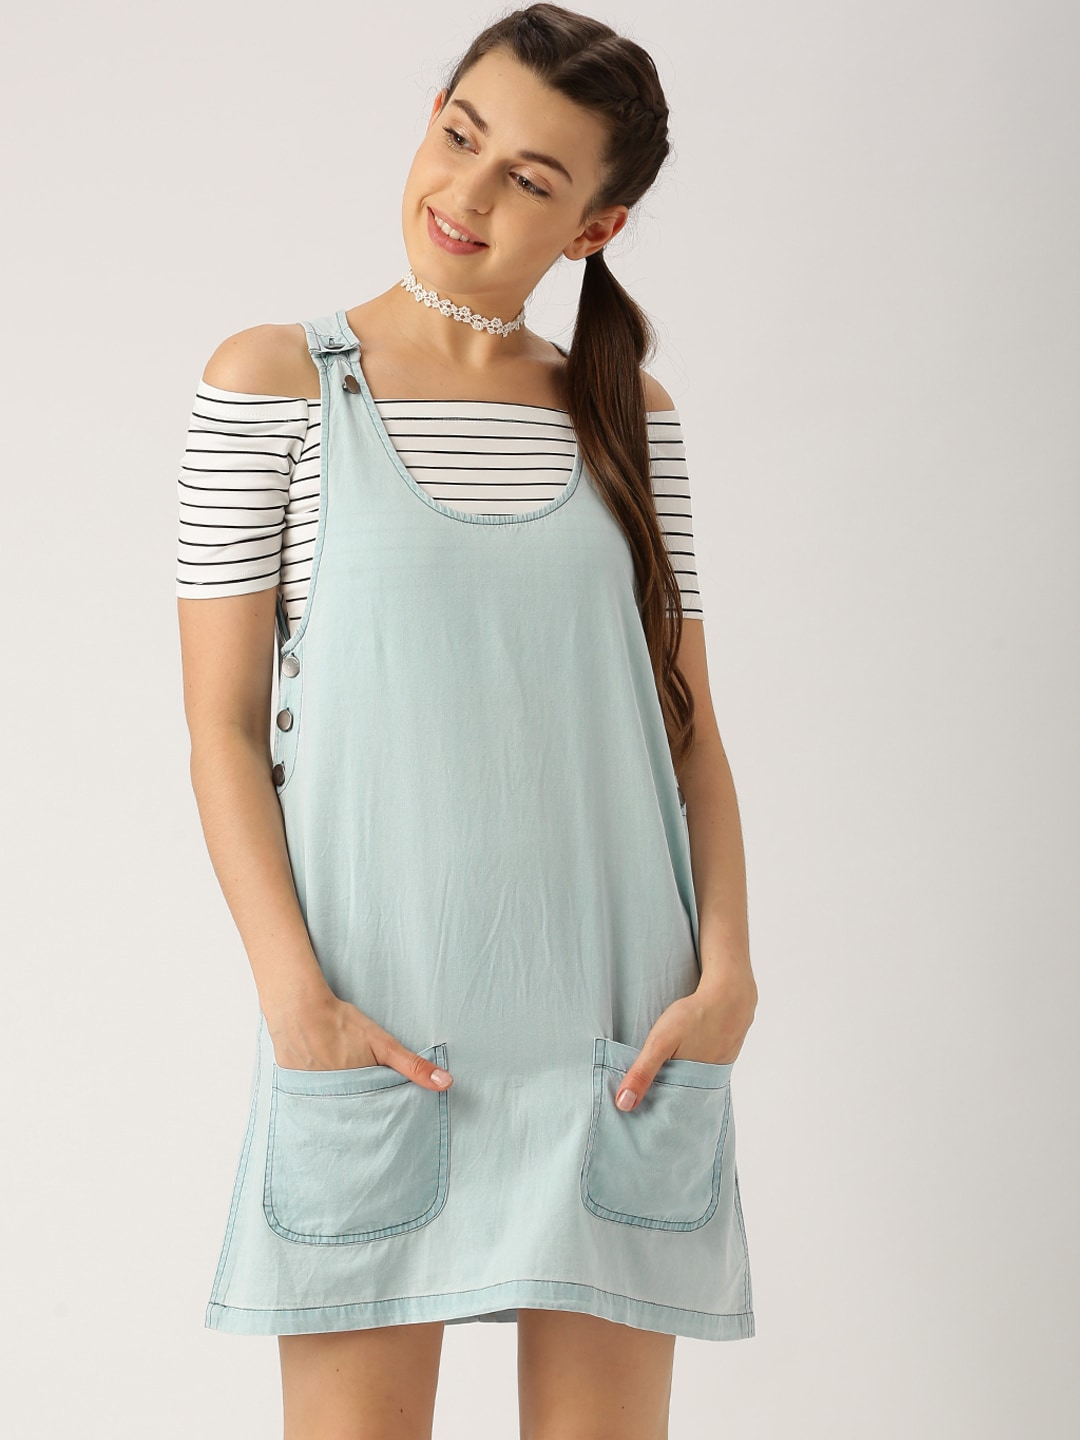 Pinafore dresses for women diy pinafore with adjustable straps denim dresses buy denim dresses online in india myntra ombrellifo Choice Image